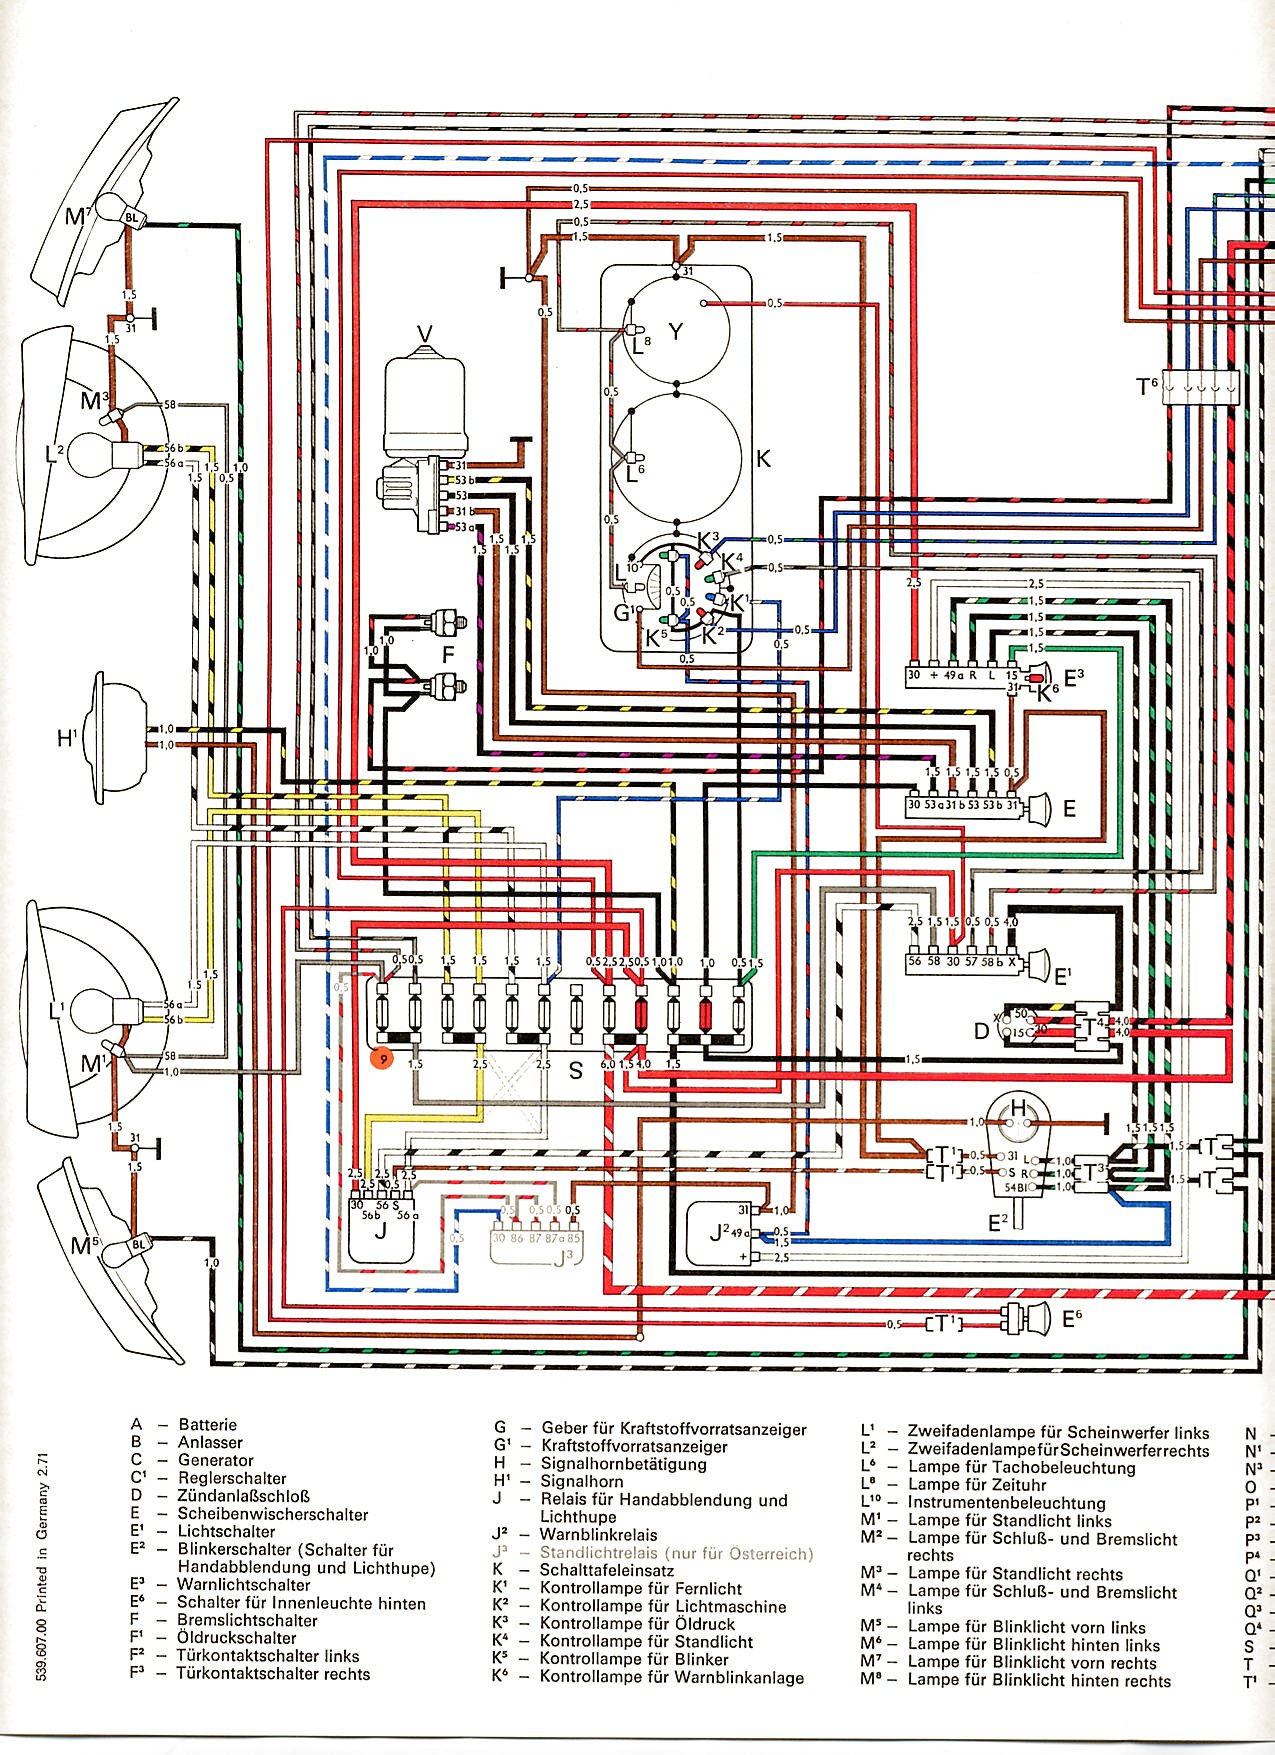 vintagebus com vw bus and other wiring diagrams rh vintagebus com vw t4 immobiliser wiring diagram vw transporter wiring diagram t5